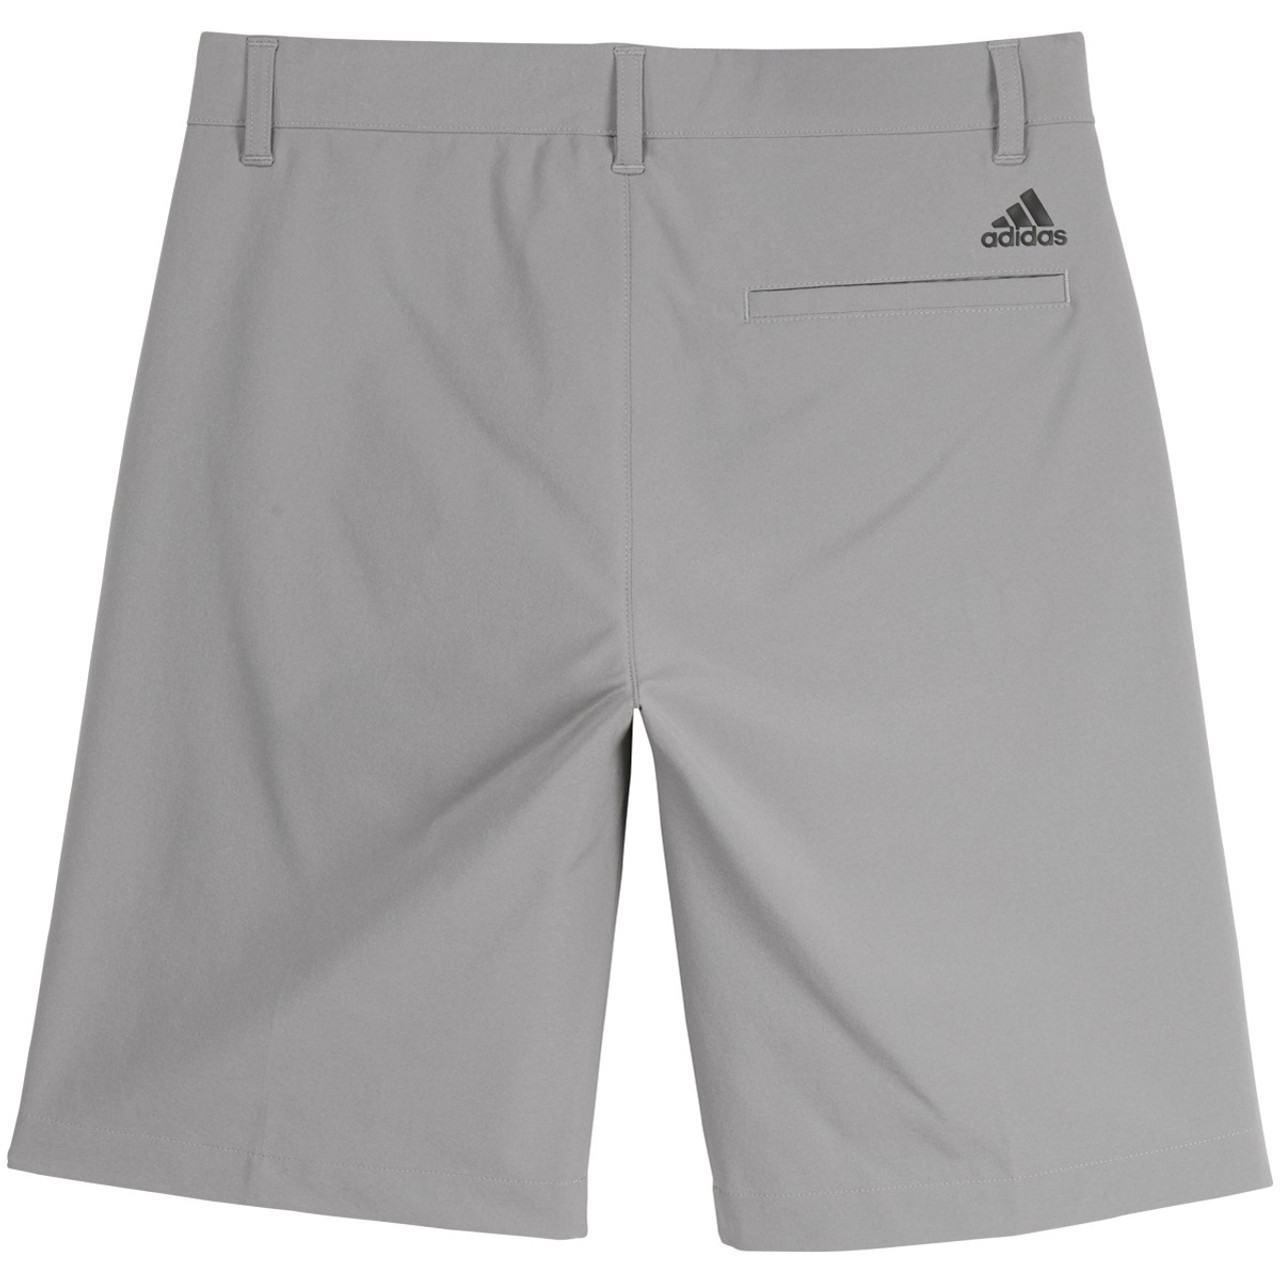 Adidas Boys Solid Shorts - Grey Three